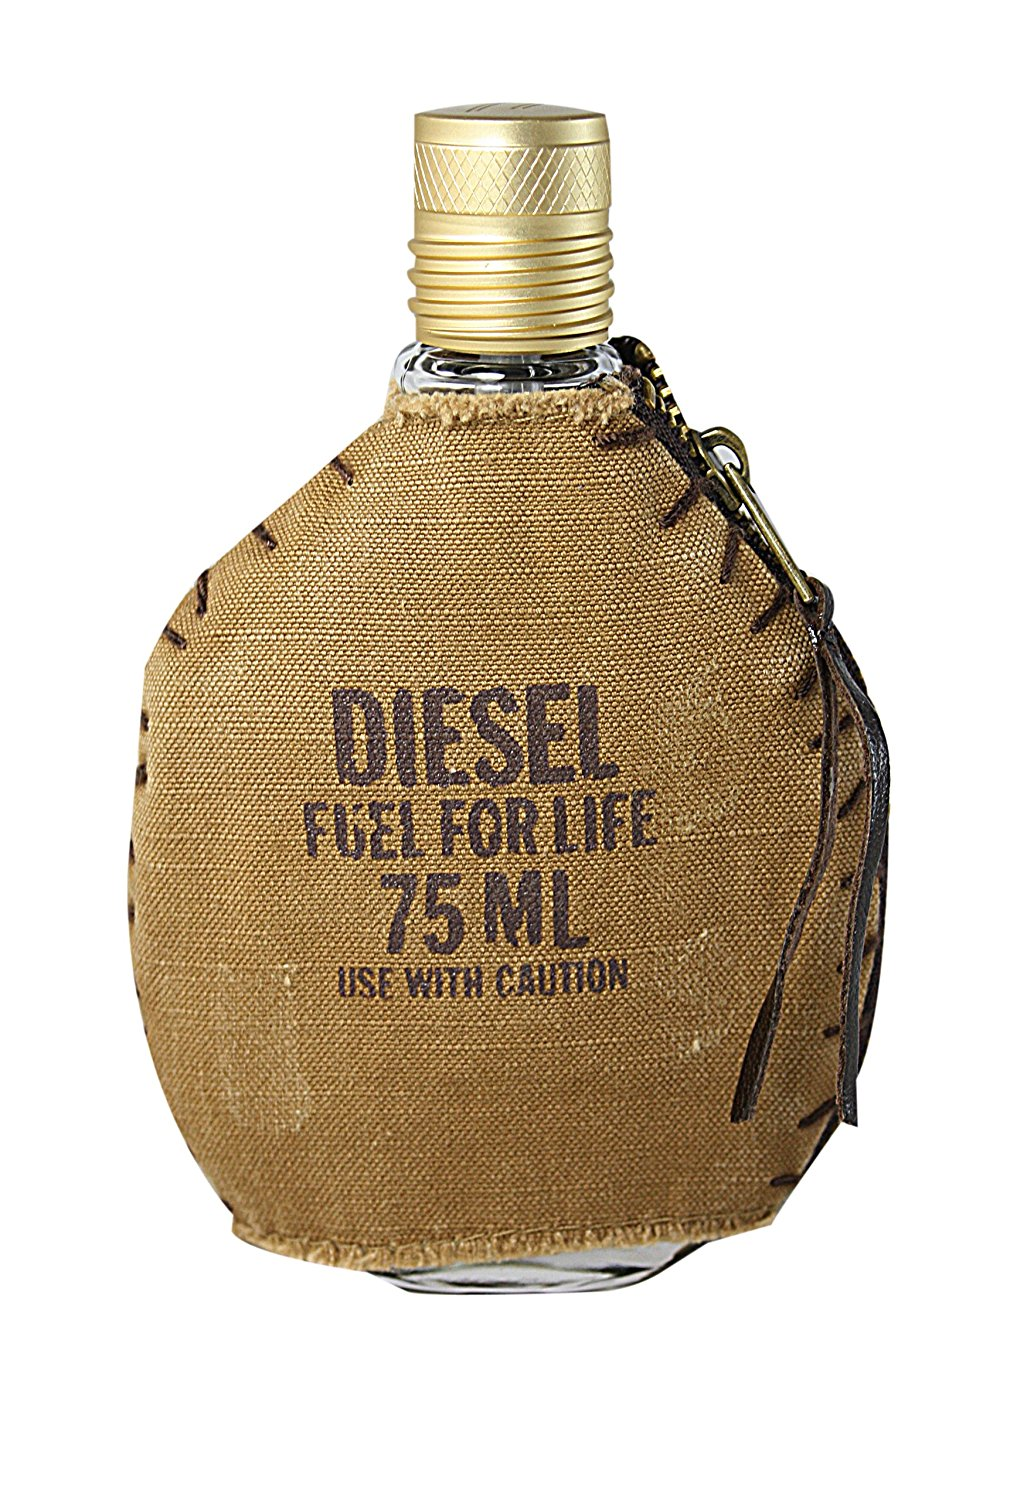 diesel fuel for life homme eau de toilette spray 30 ml 50. Black Bedroom Furniture Sets. Home Design Ideas